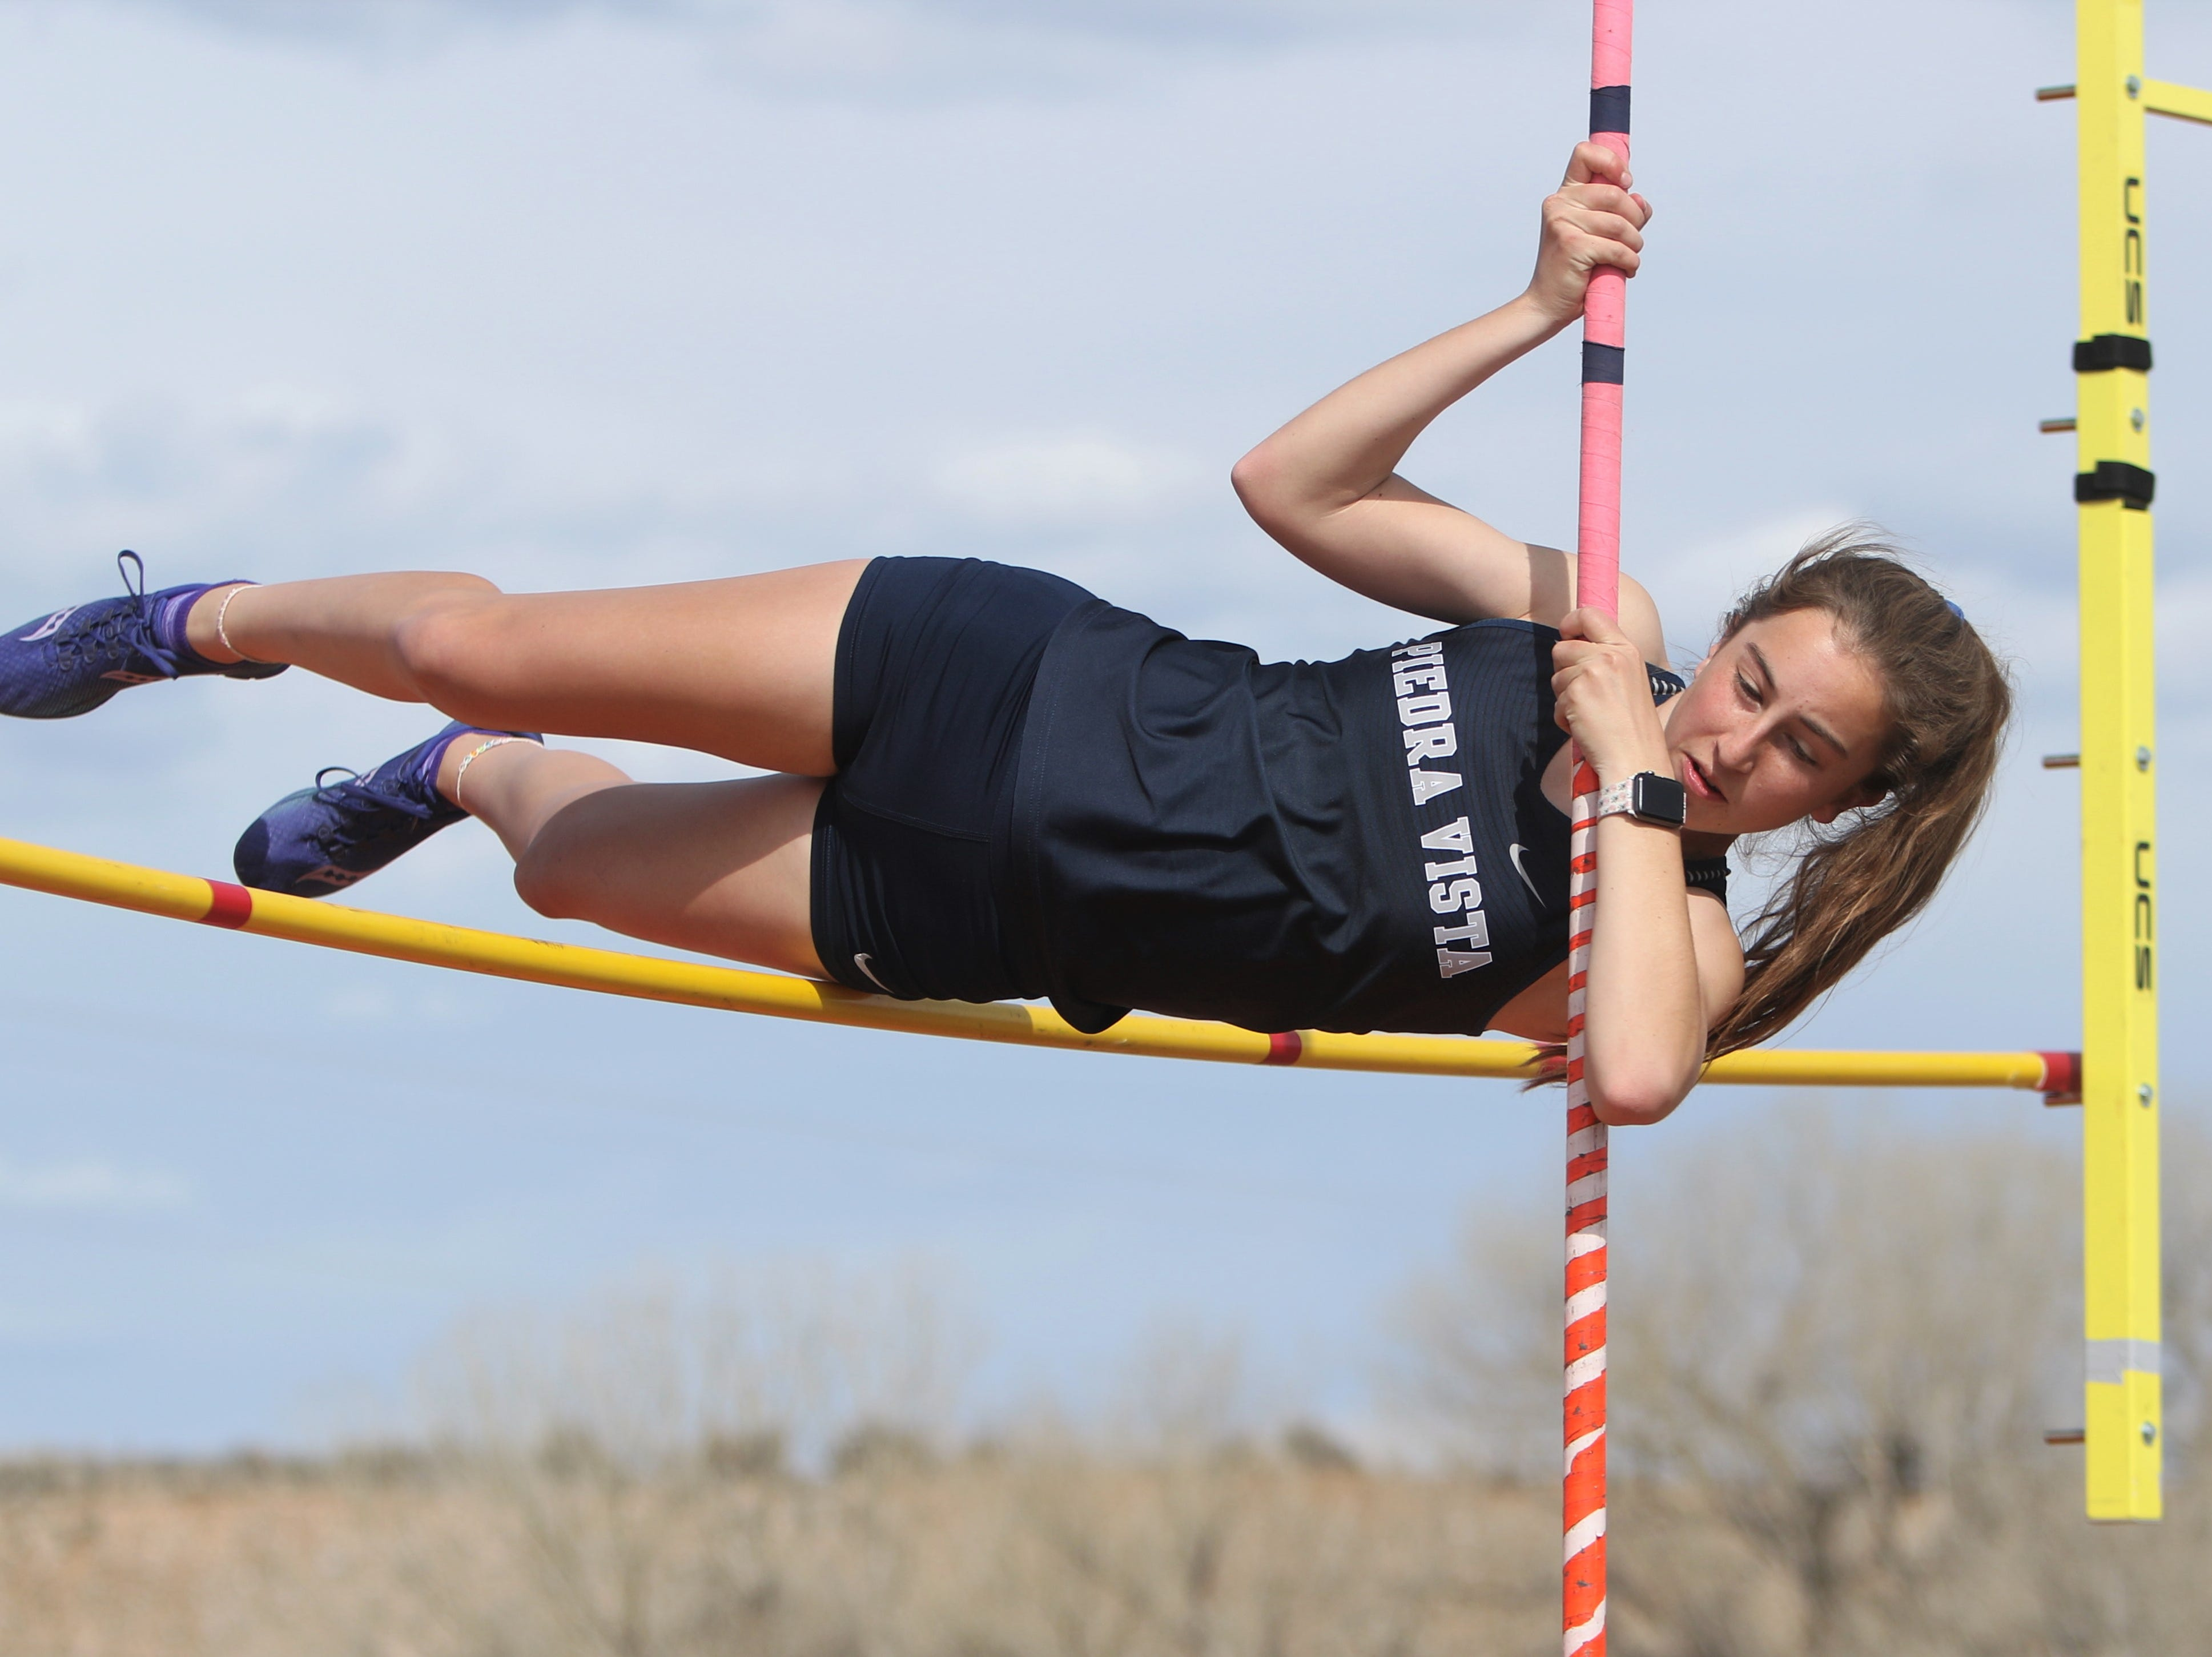 Piedra Vista's Jenna Basham clips the bar on way back down in the girls pole vault during Friday's Top Gun Invitational at Aztec.